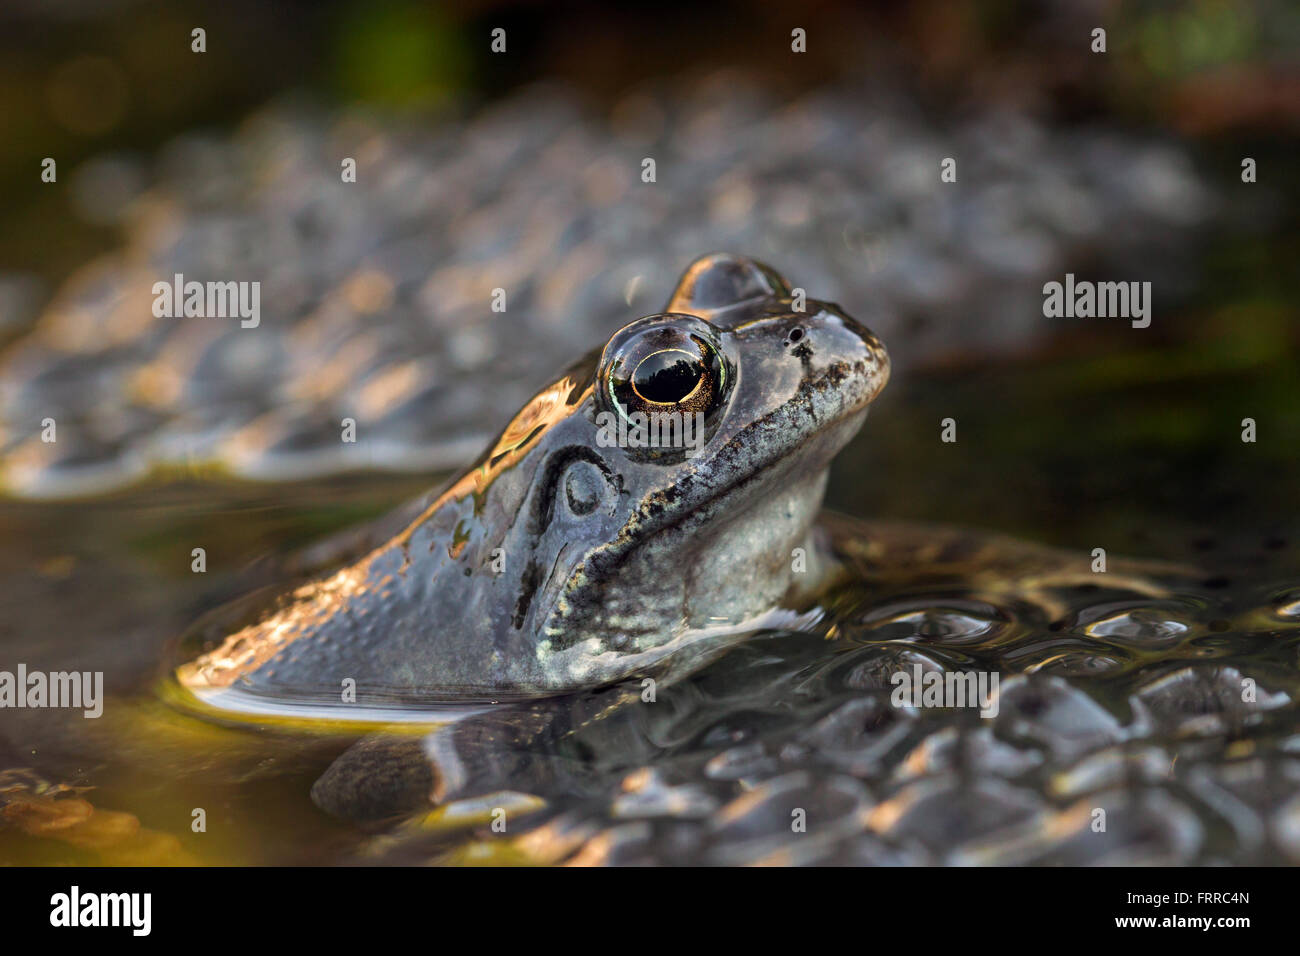 European common frog (Rana temporaria) close up  of head among frogspawn in pond Stock Photo